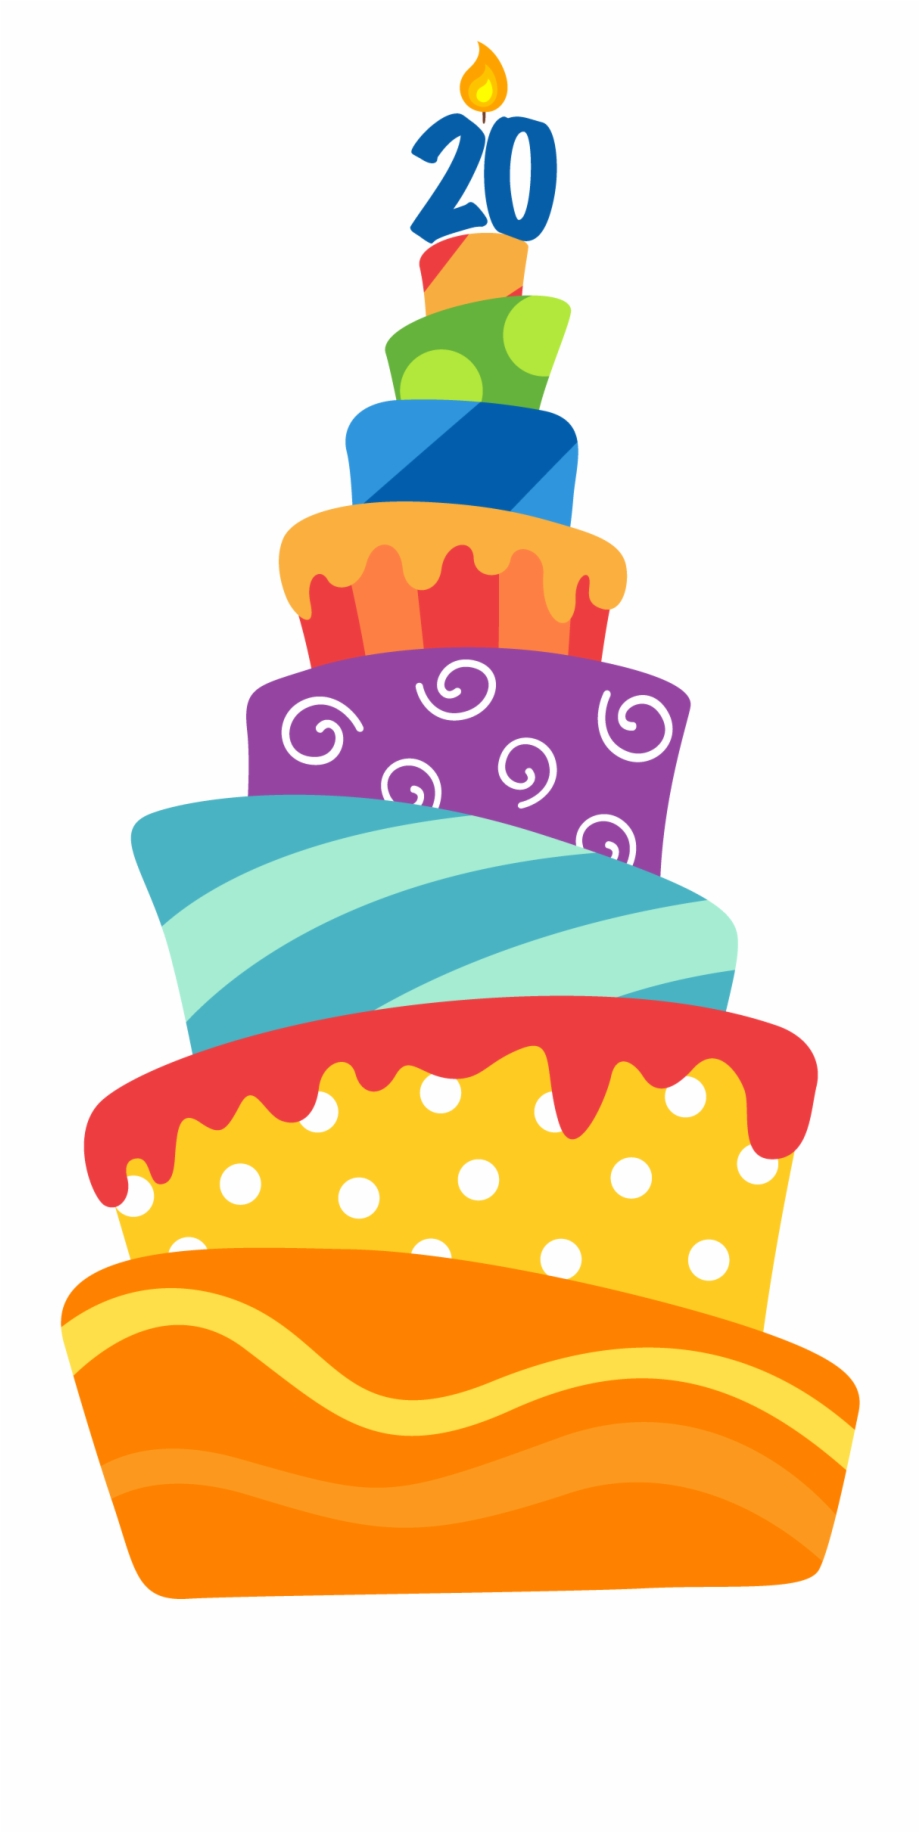 Astounding May Clipart Birthday Cake 20Th Birthday Cake Png Transparent Funny Birthday Cards Online Inifodamsfinfo